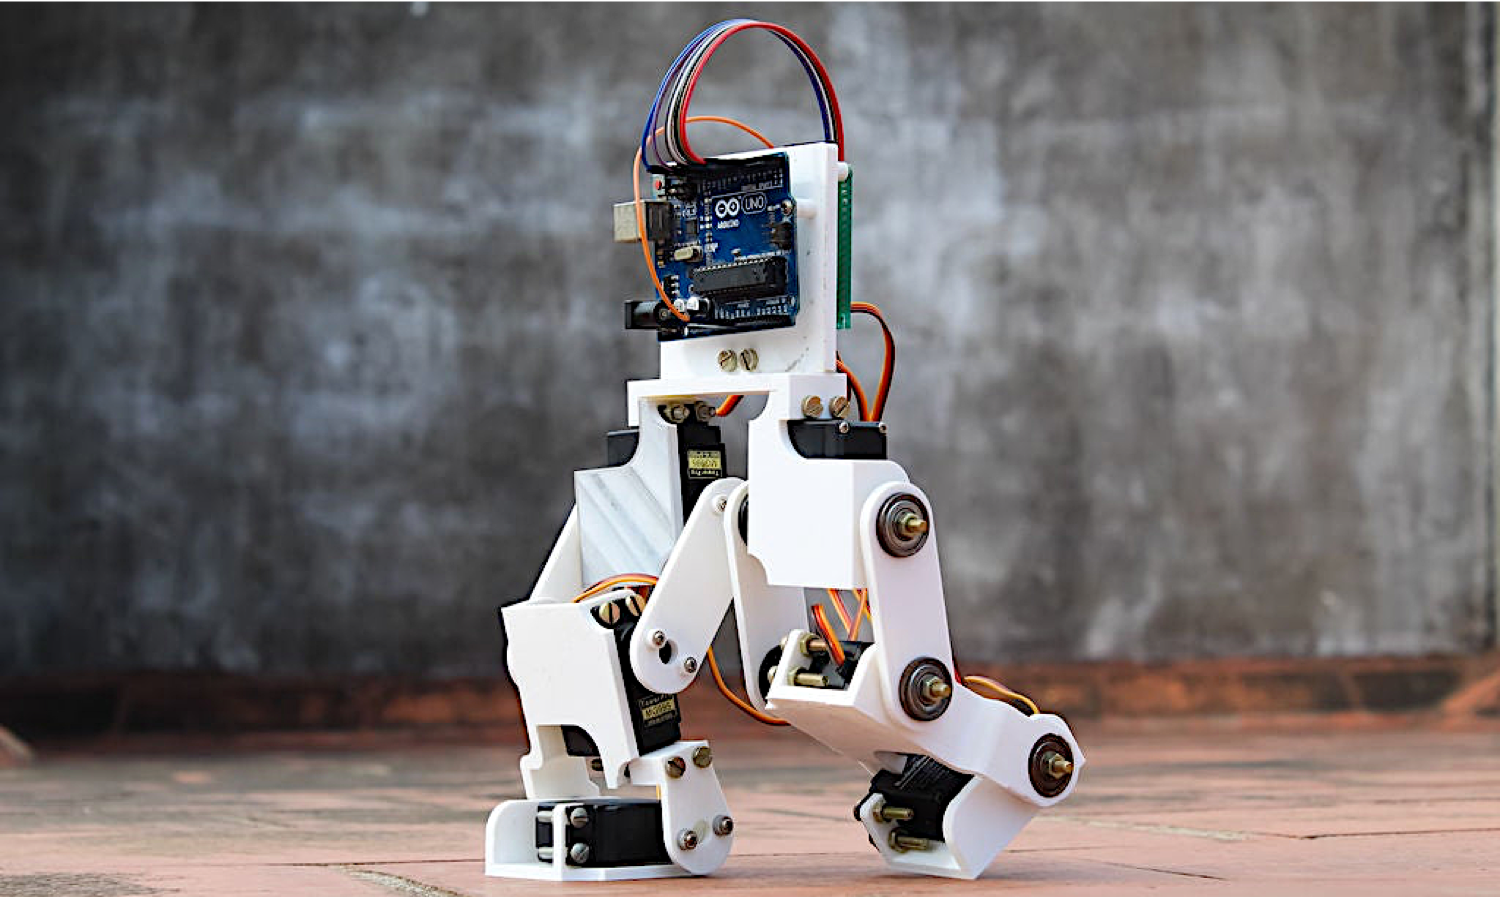 Robotics projects are always a favorite for hackers. Being able to almost literally bring your project to life evokes a special kind of joy that reall